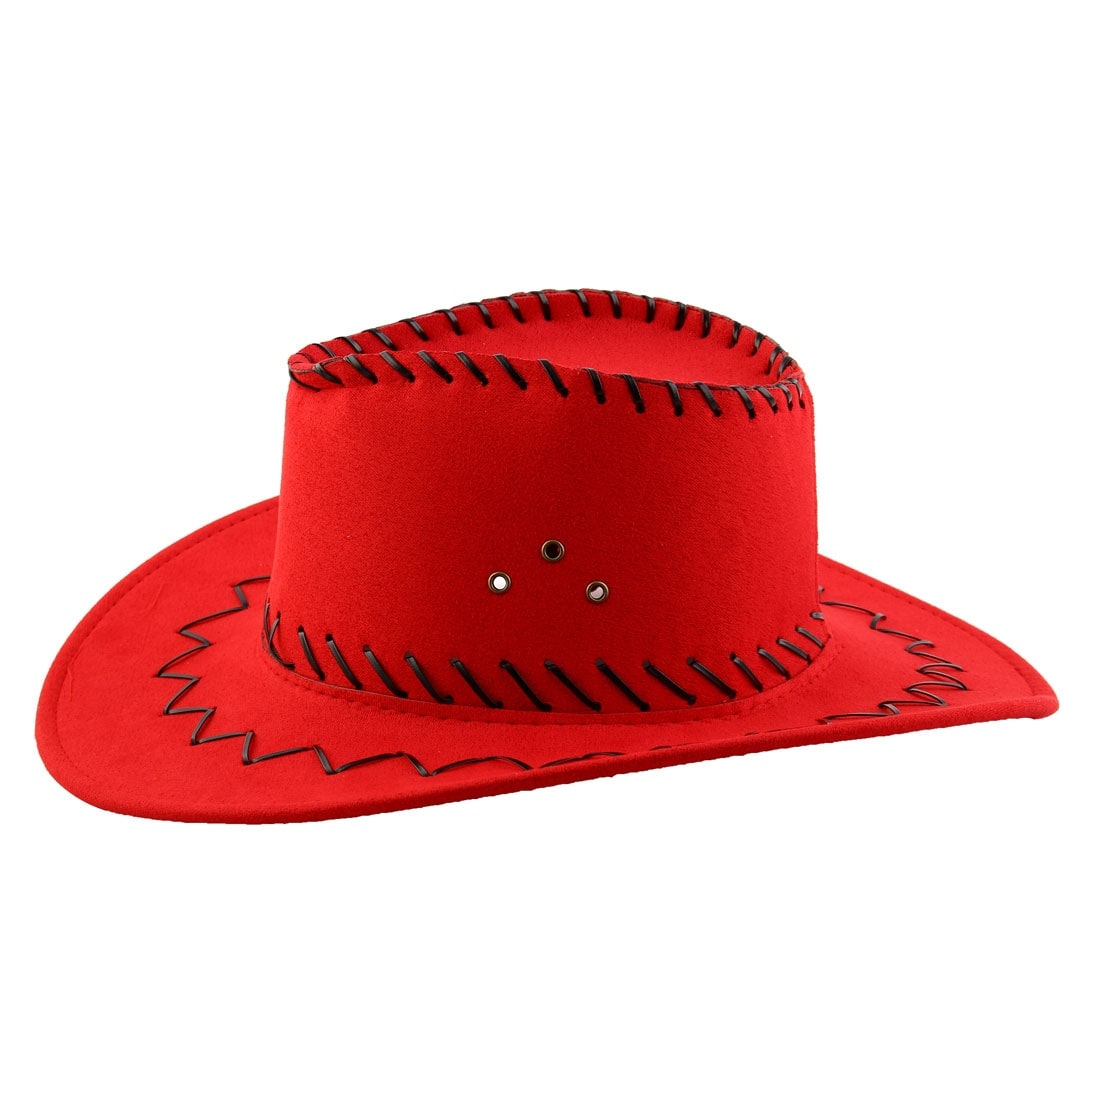 Shop Adult Adjustable Neck Strap Wide Brim Western Style Sunhat Cowboy Hat  Red - Free Shipping On Orders Over  45 - Overstock.com - 24459315 26a6b211d5a4